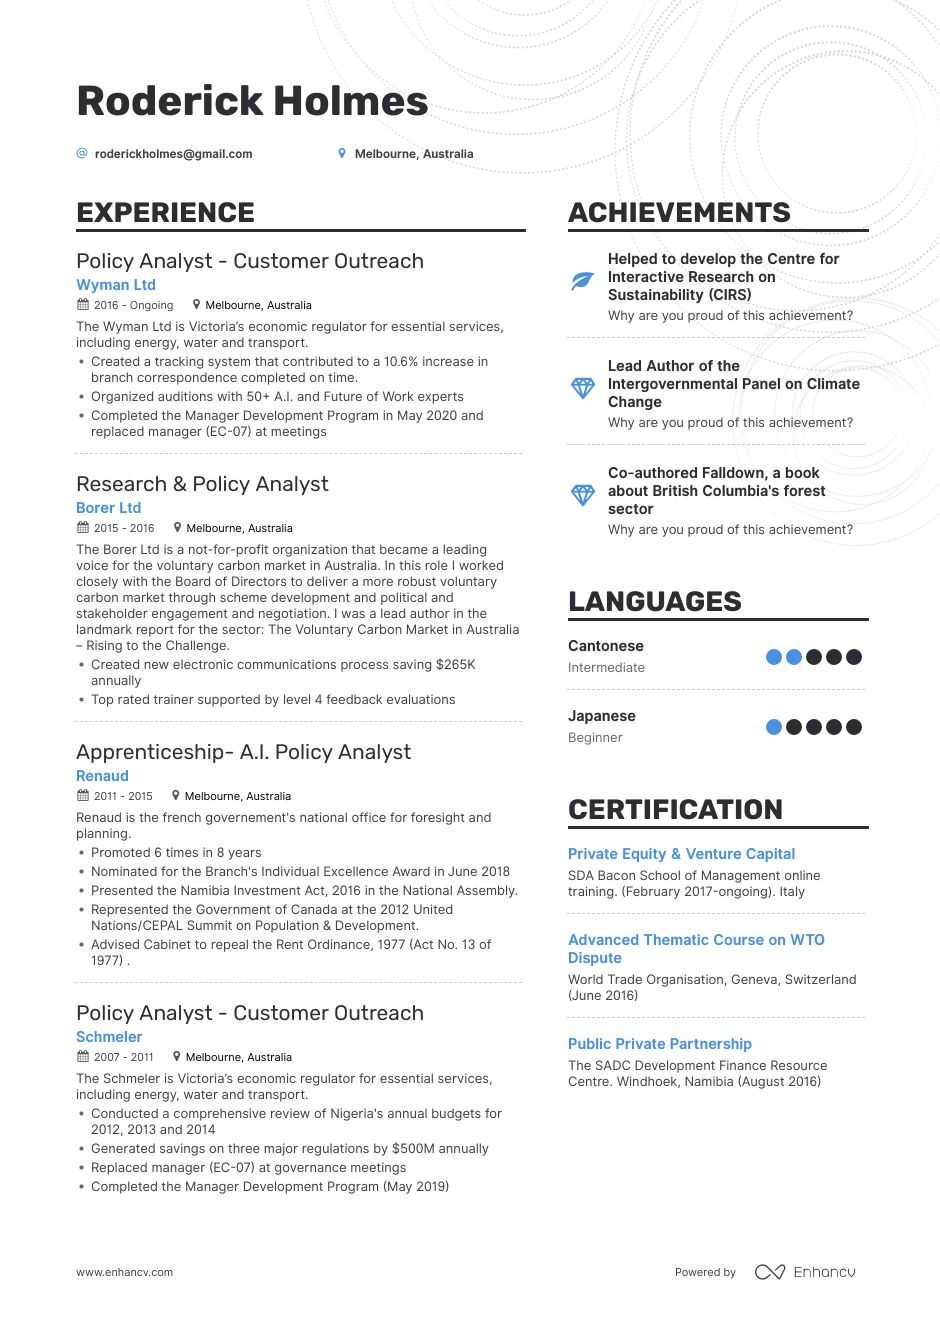 policy analyst resume example for enhancv political organizer examples of special skills Resume Political Organizer Resume